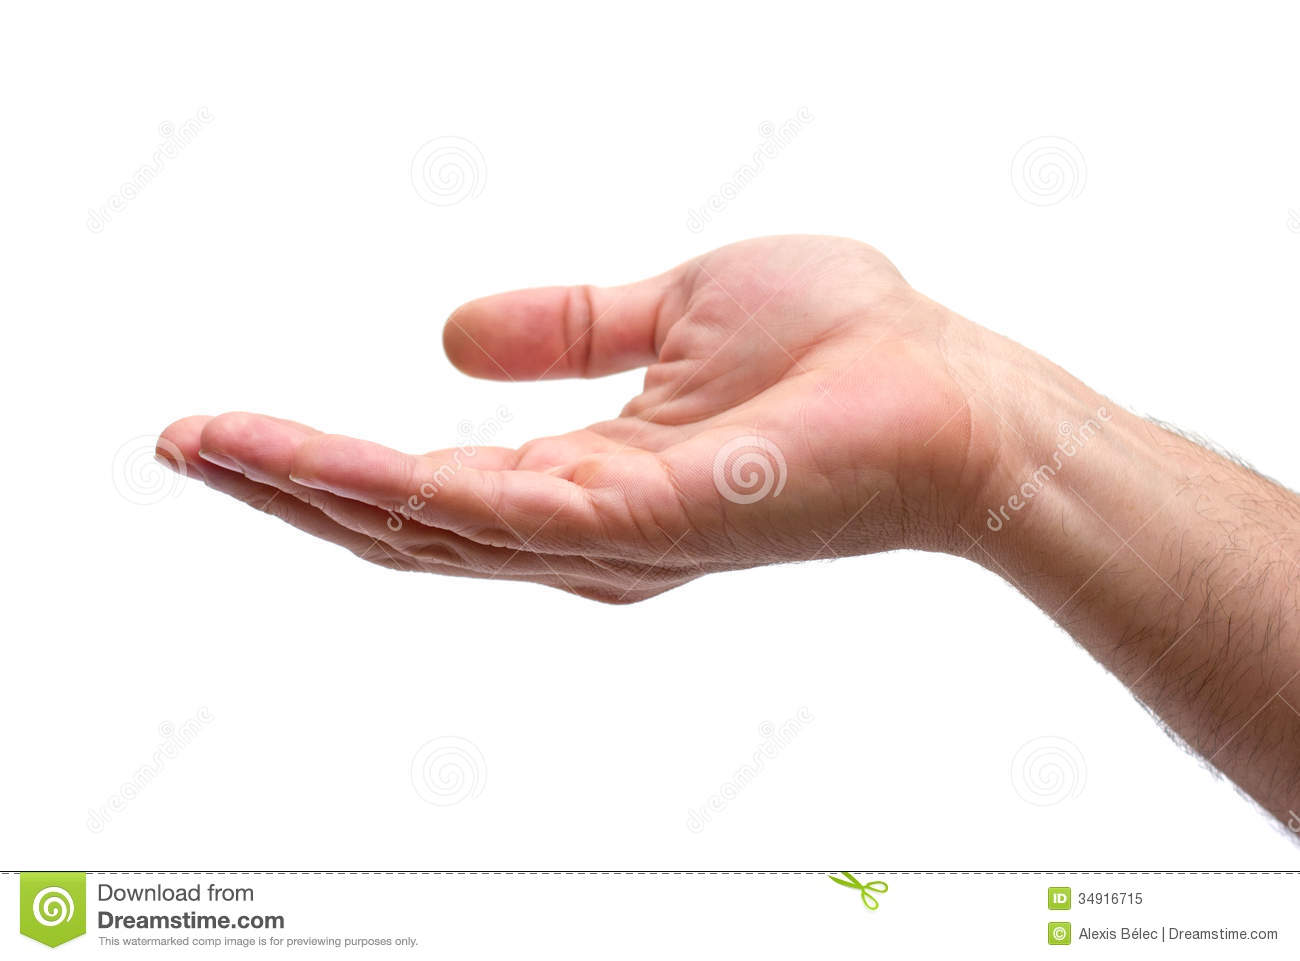 give me the map of united states with Royalty Free Stock Photo Give Me Some Isolated Caucasian Man Hand Over White Image34916715 on Charlotte Nc Zip Code Map together with Stock Photo Give Me Five D People Man Person Friends Image32590350 besides Native American Cultures together with Maine in addition Stock Photography Give Me My Money Finance Image15833702.